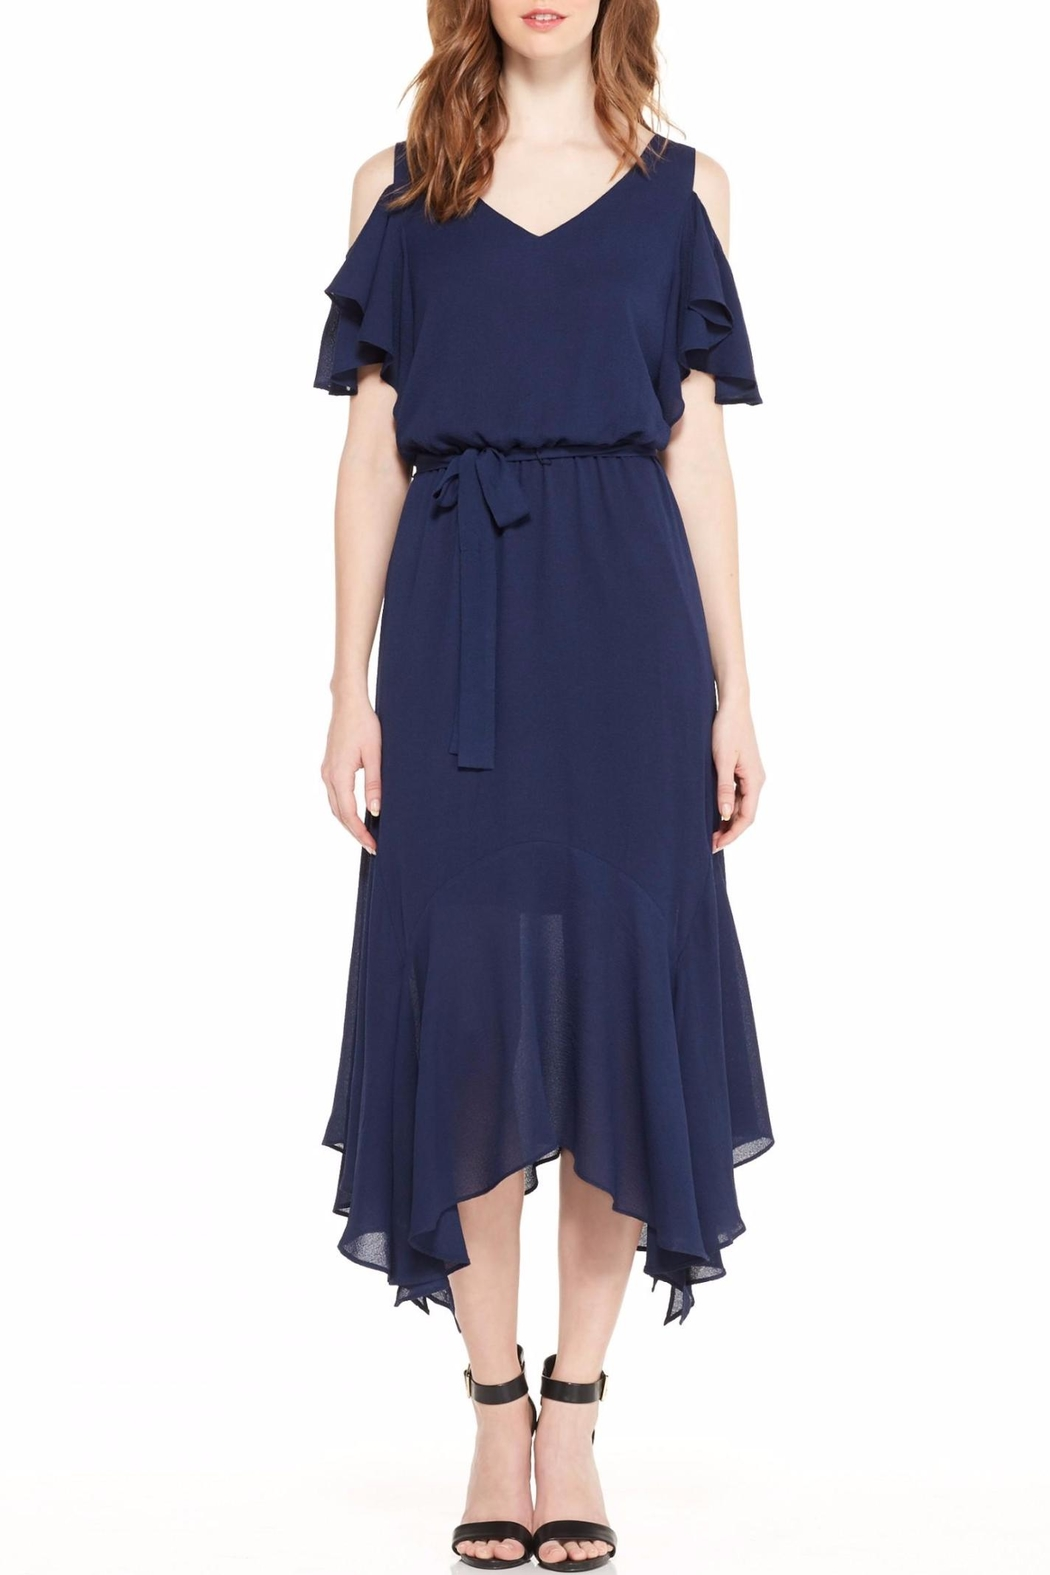 Maggy London Navy Cold Shoulder Dress - Main Image